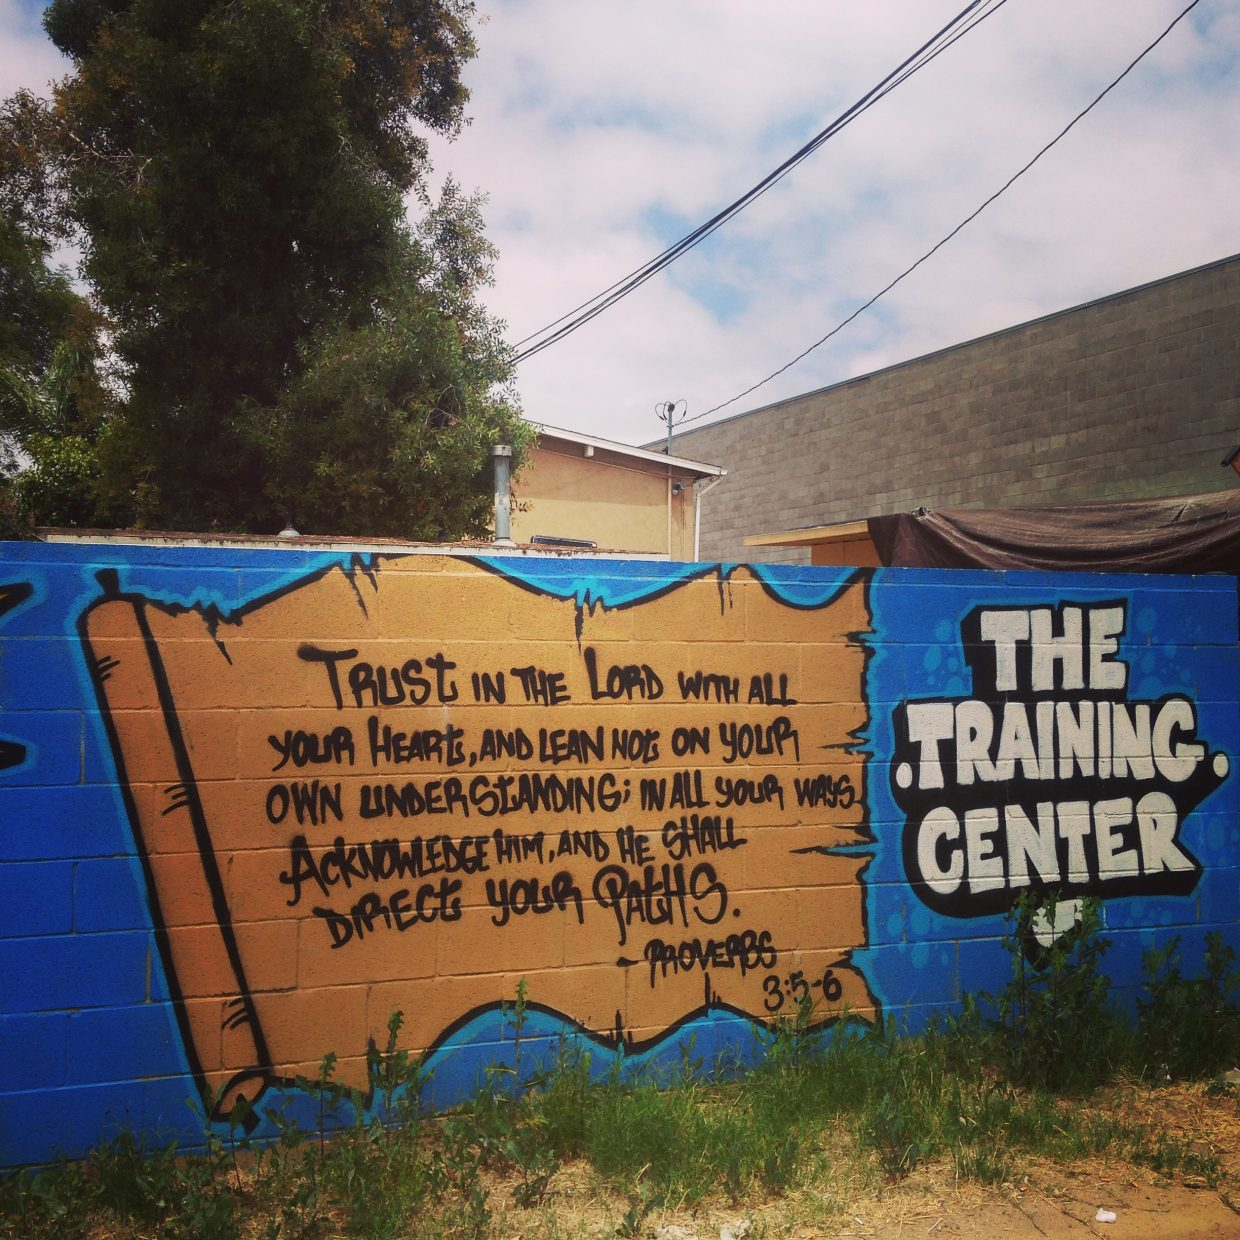 Graffiti art at The Training Center in San Diego.